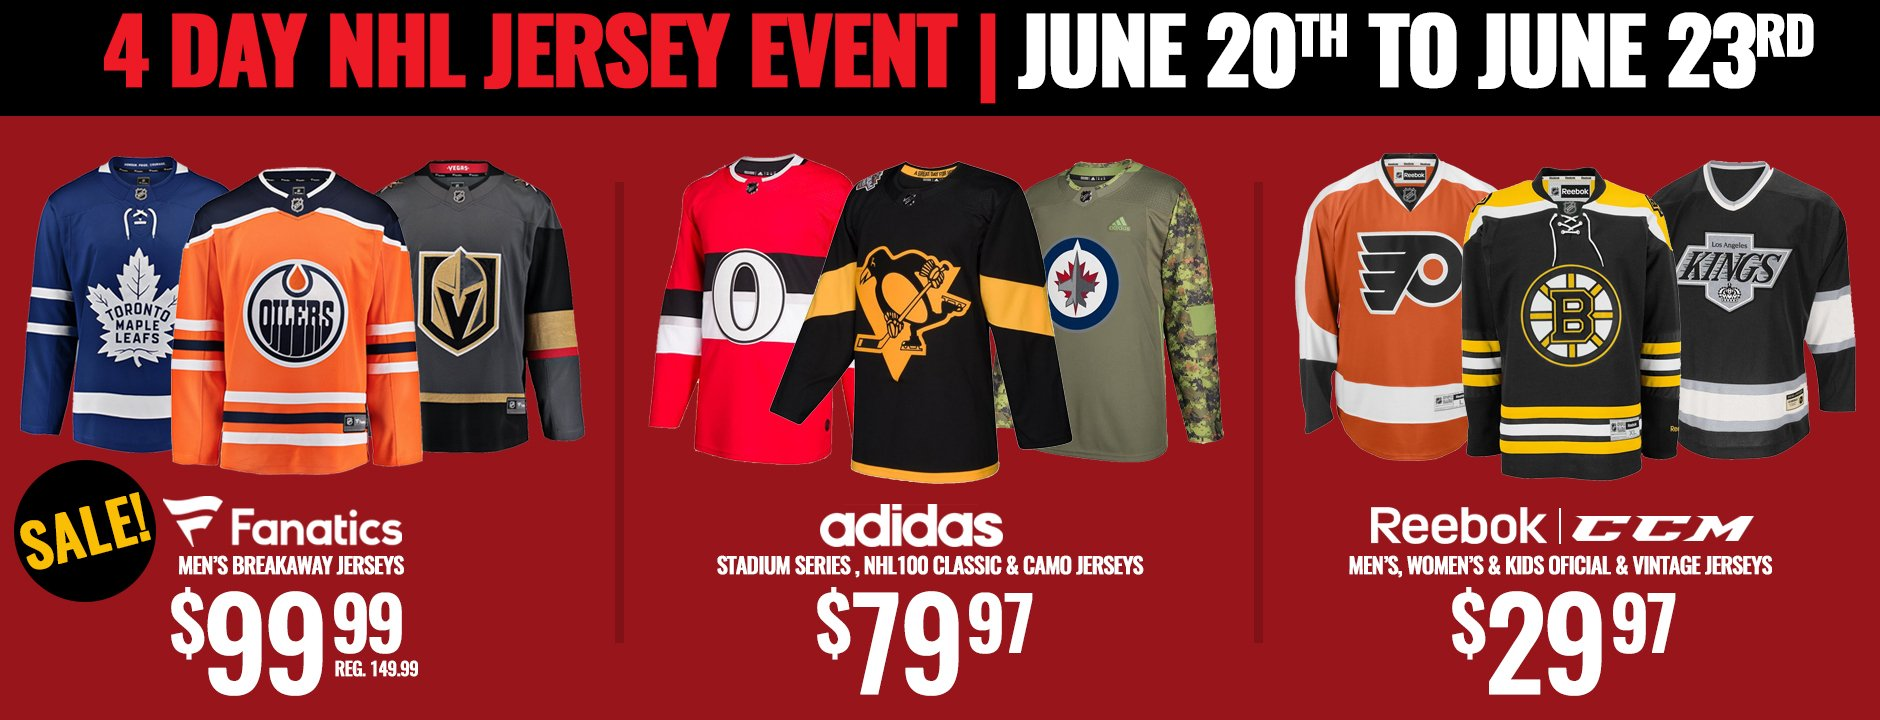 4-Day NHL Jersey Event